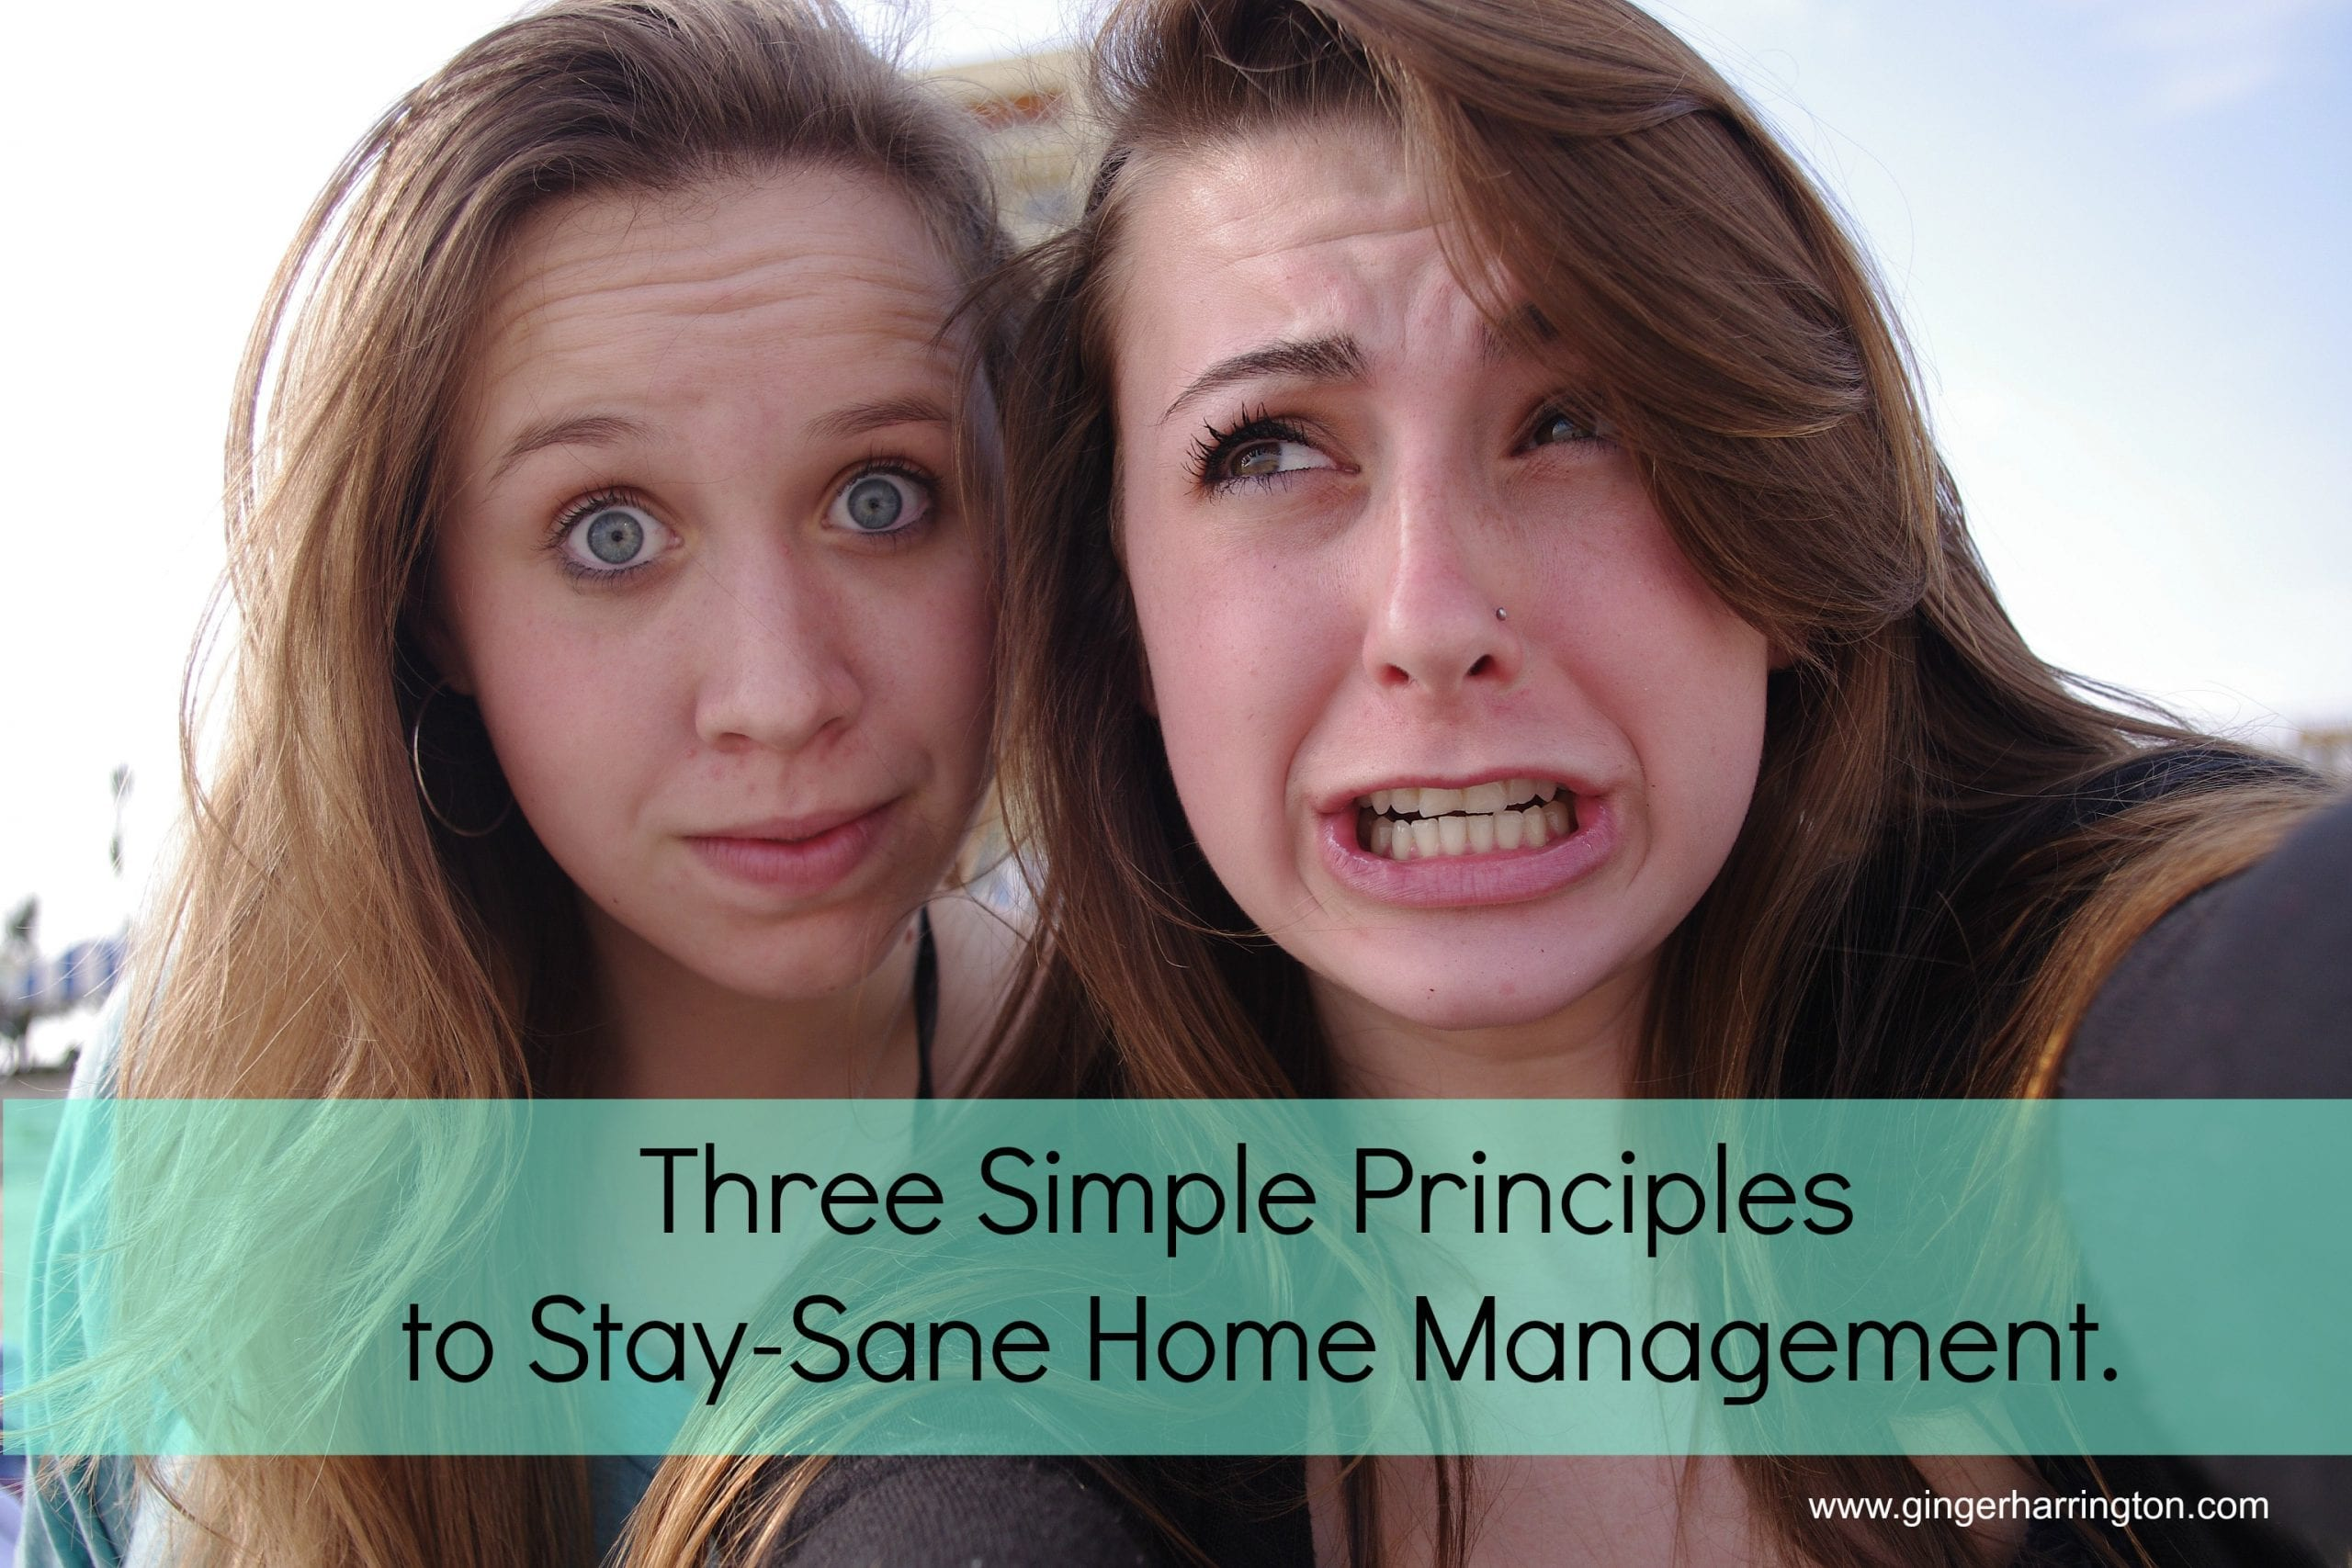 3 More Principles for Stay-Sane Home Management